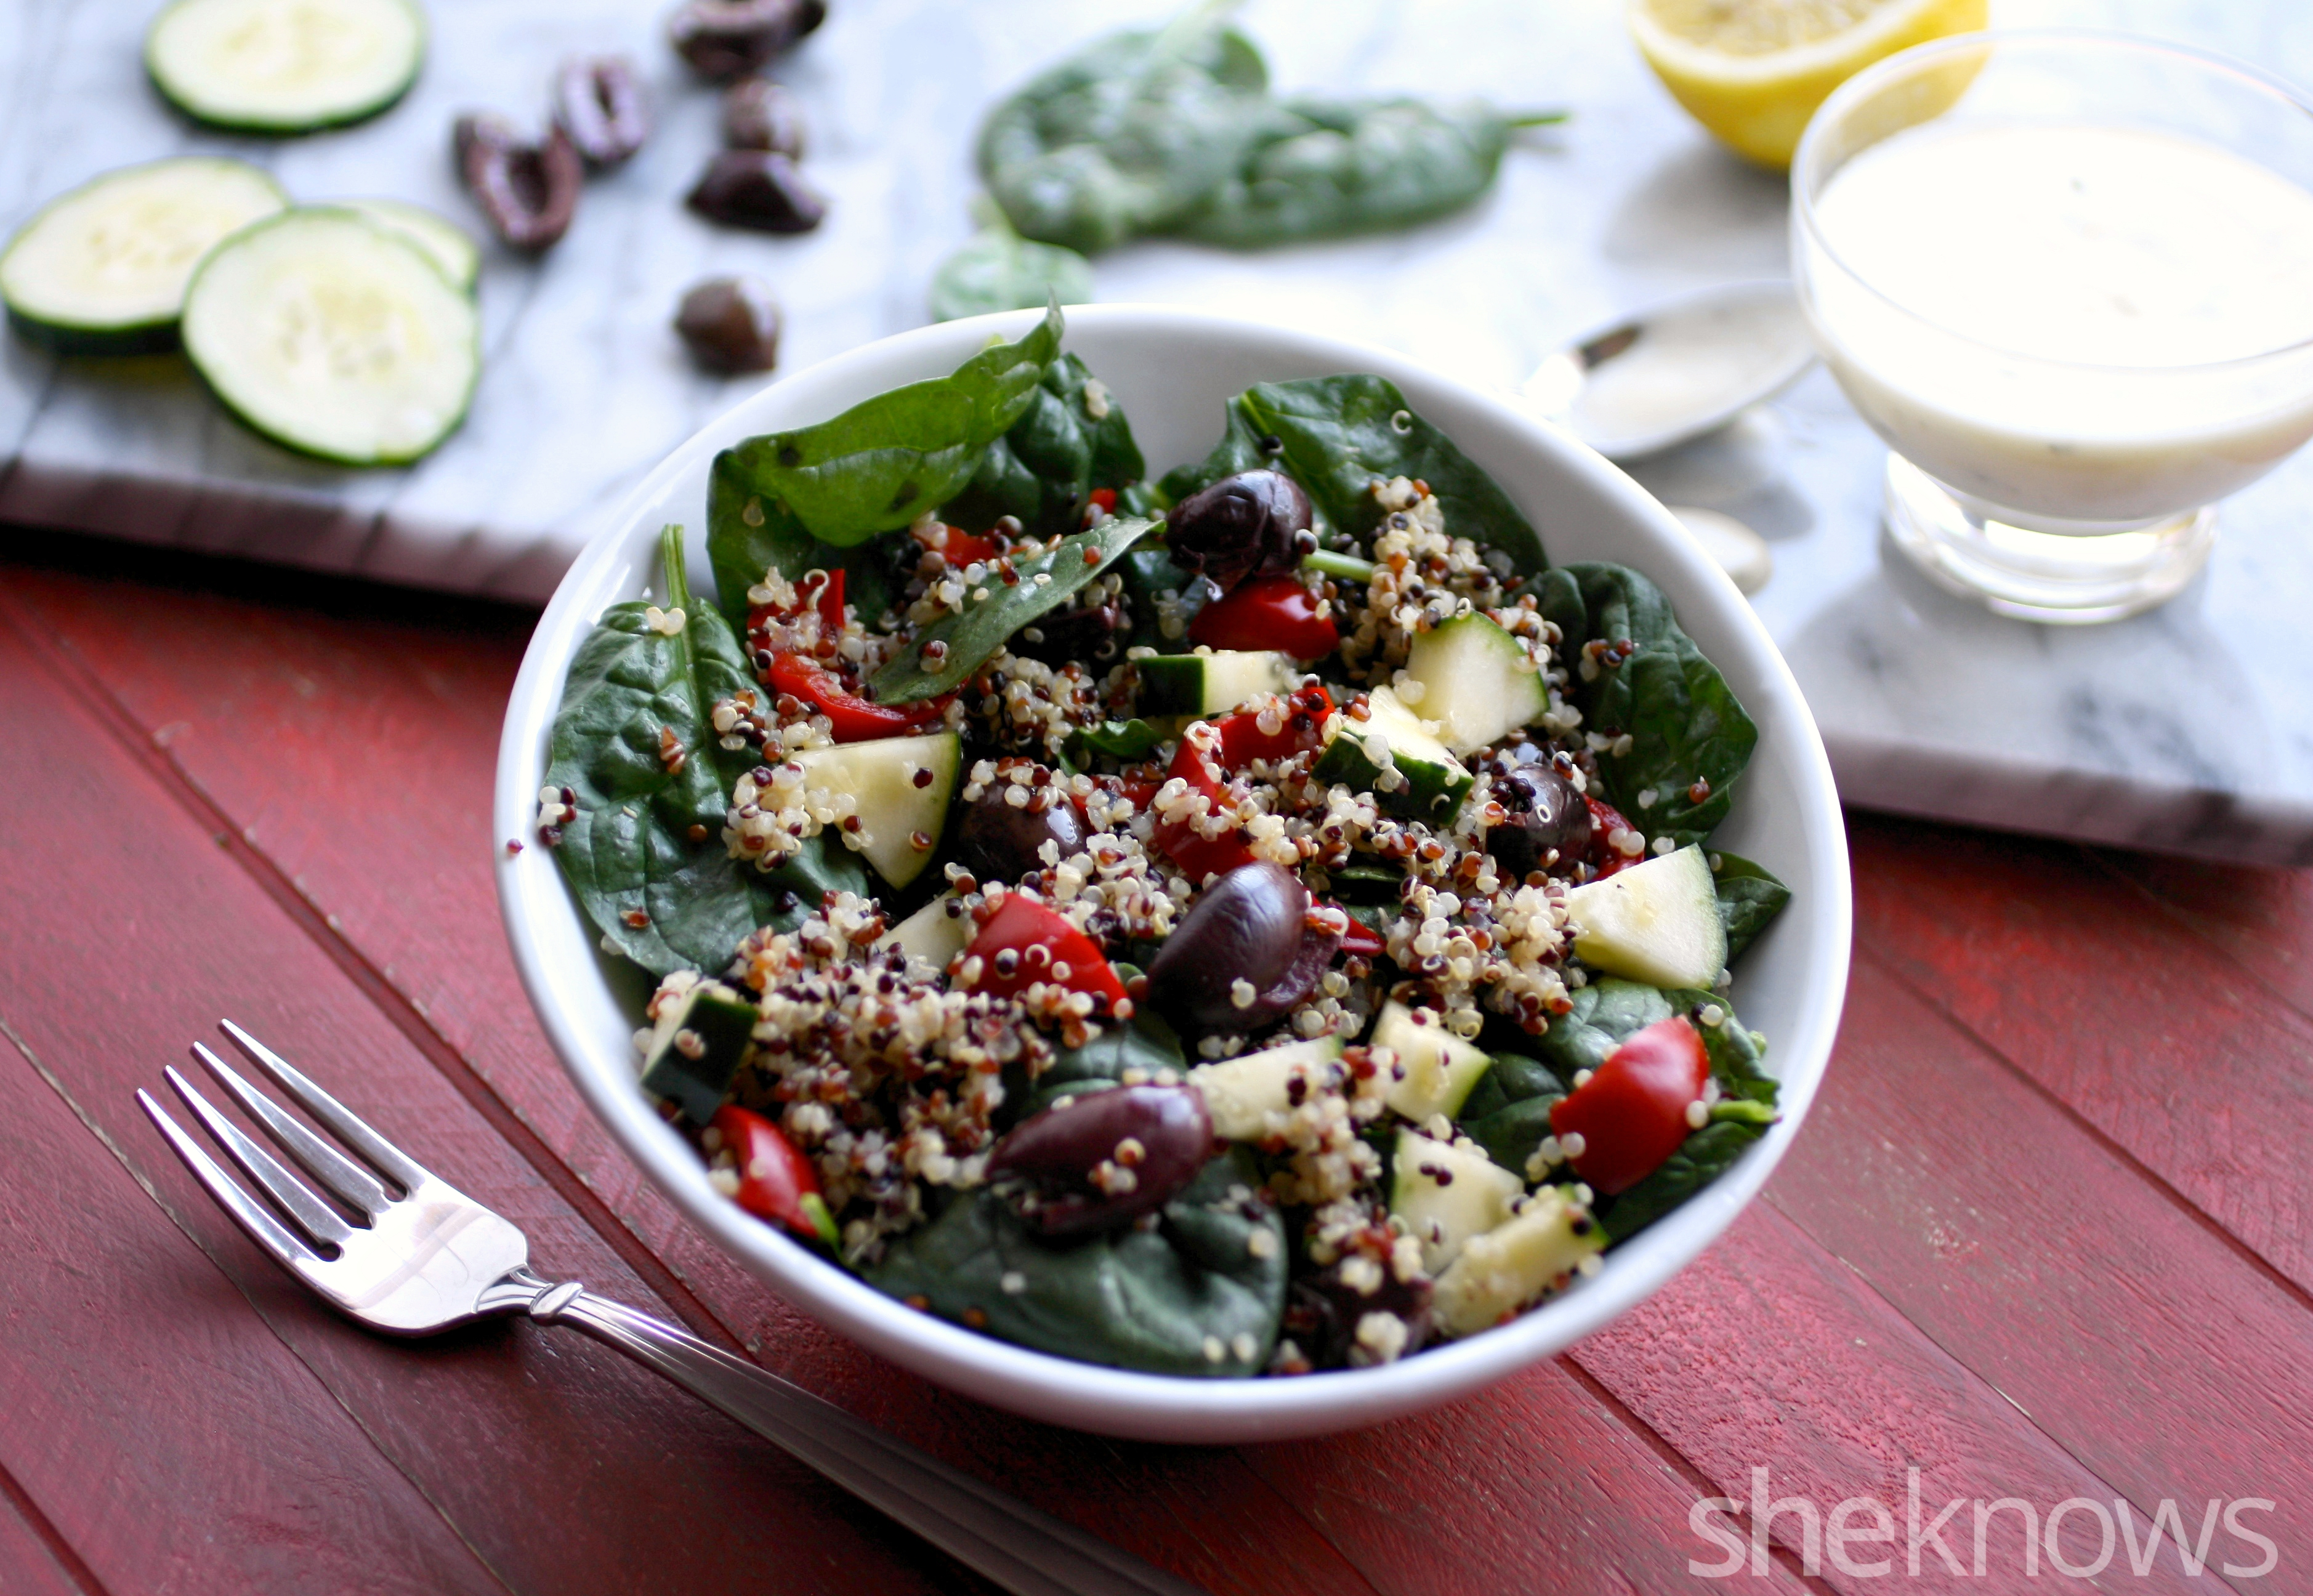 Dig into this hearty and delicious Greek quinoa salad with creamy lemony dressing